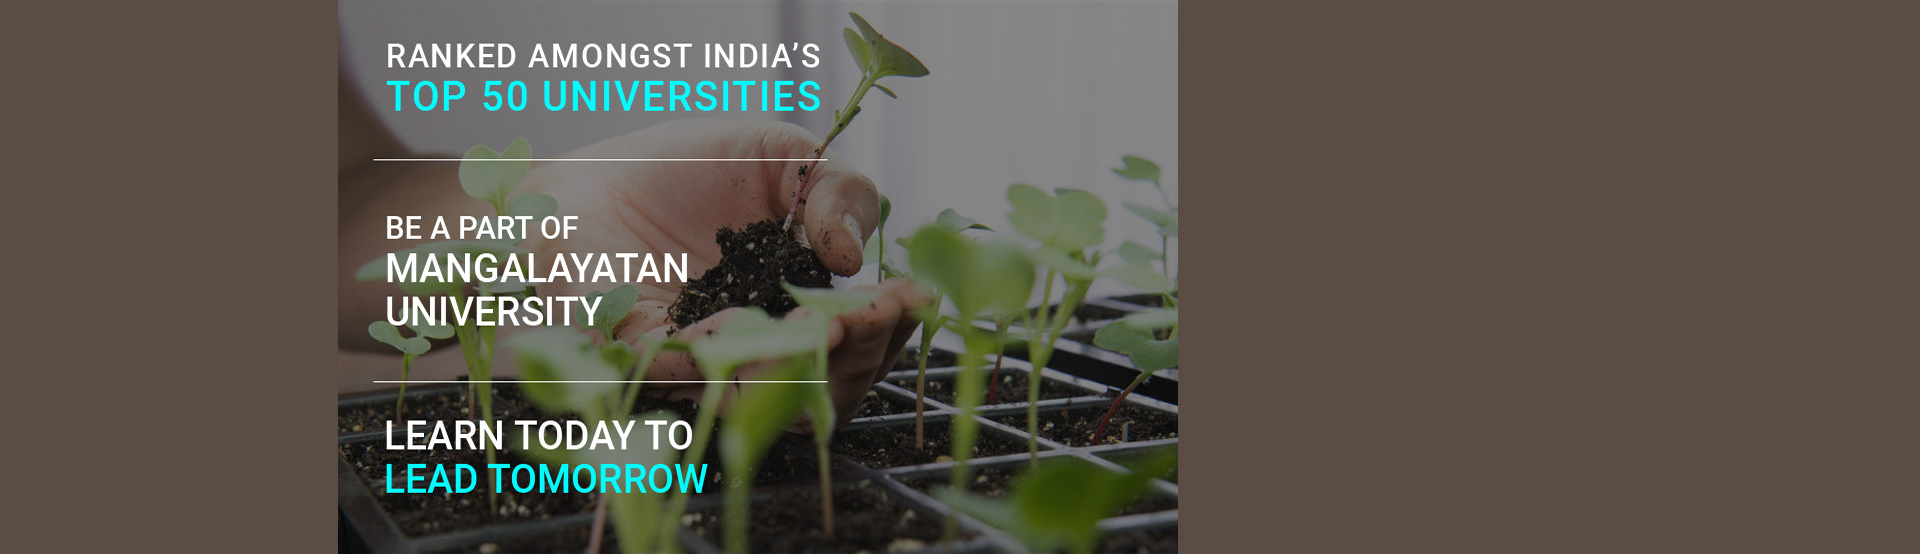 Career Opportunity or Scope after an Agriculture Course in India